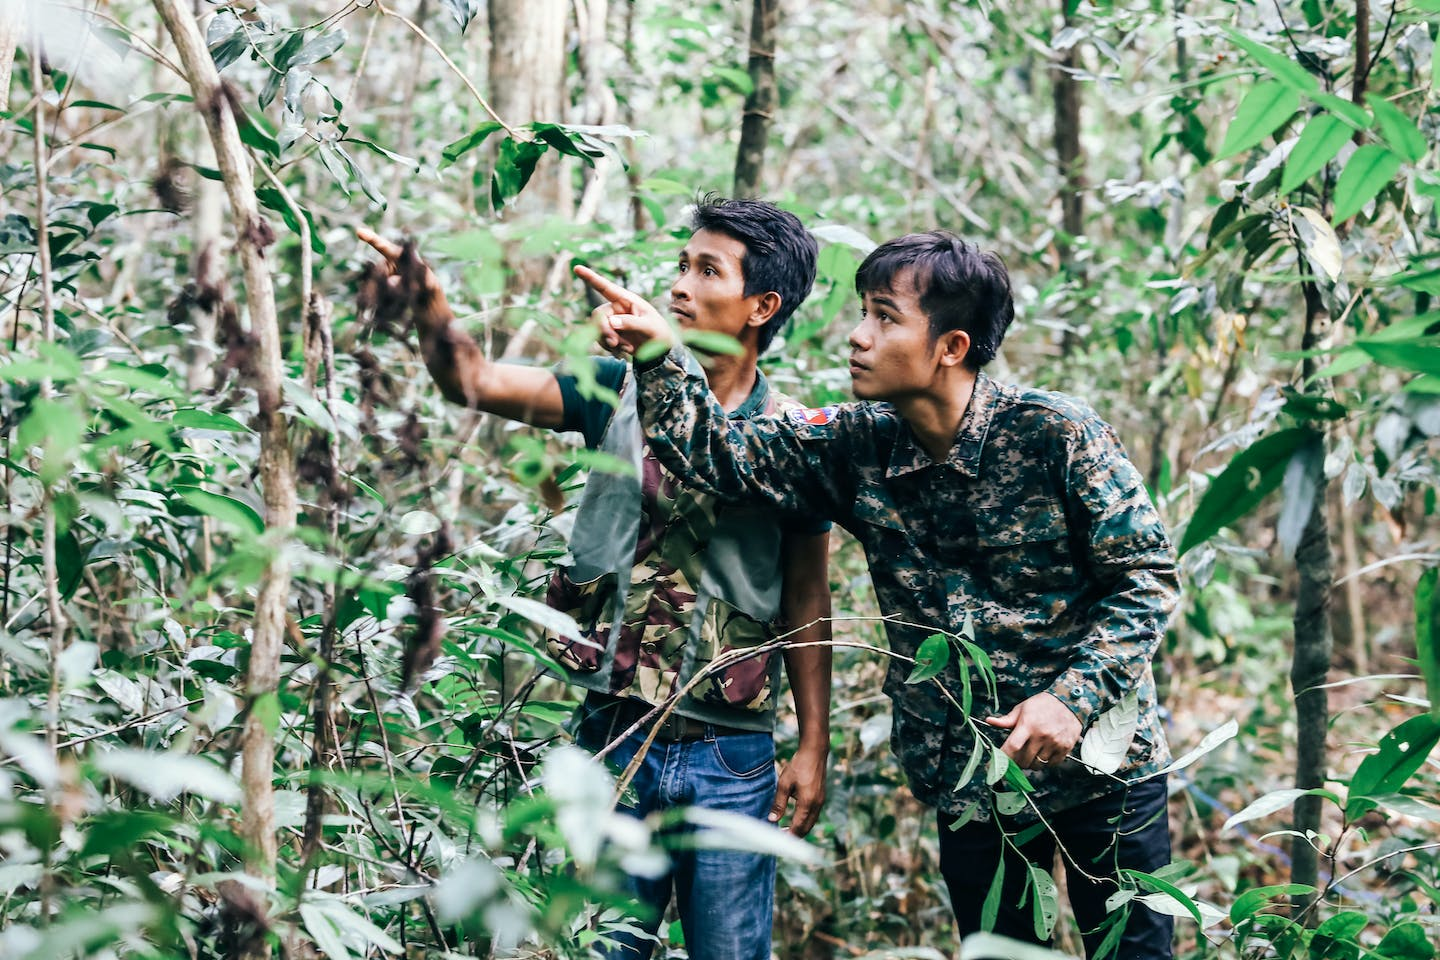 Chefs scour the forest for ingredients to cook with at Cambodian luxury resort Shinta Mani Wild. Image: Marissa Carruthers